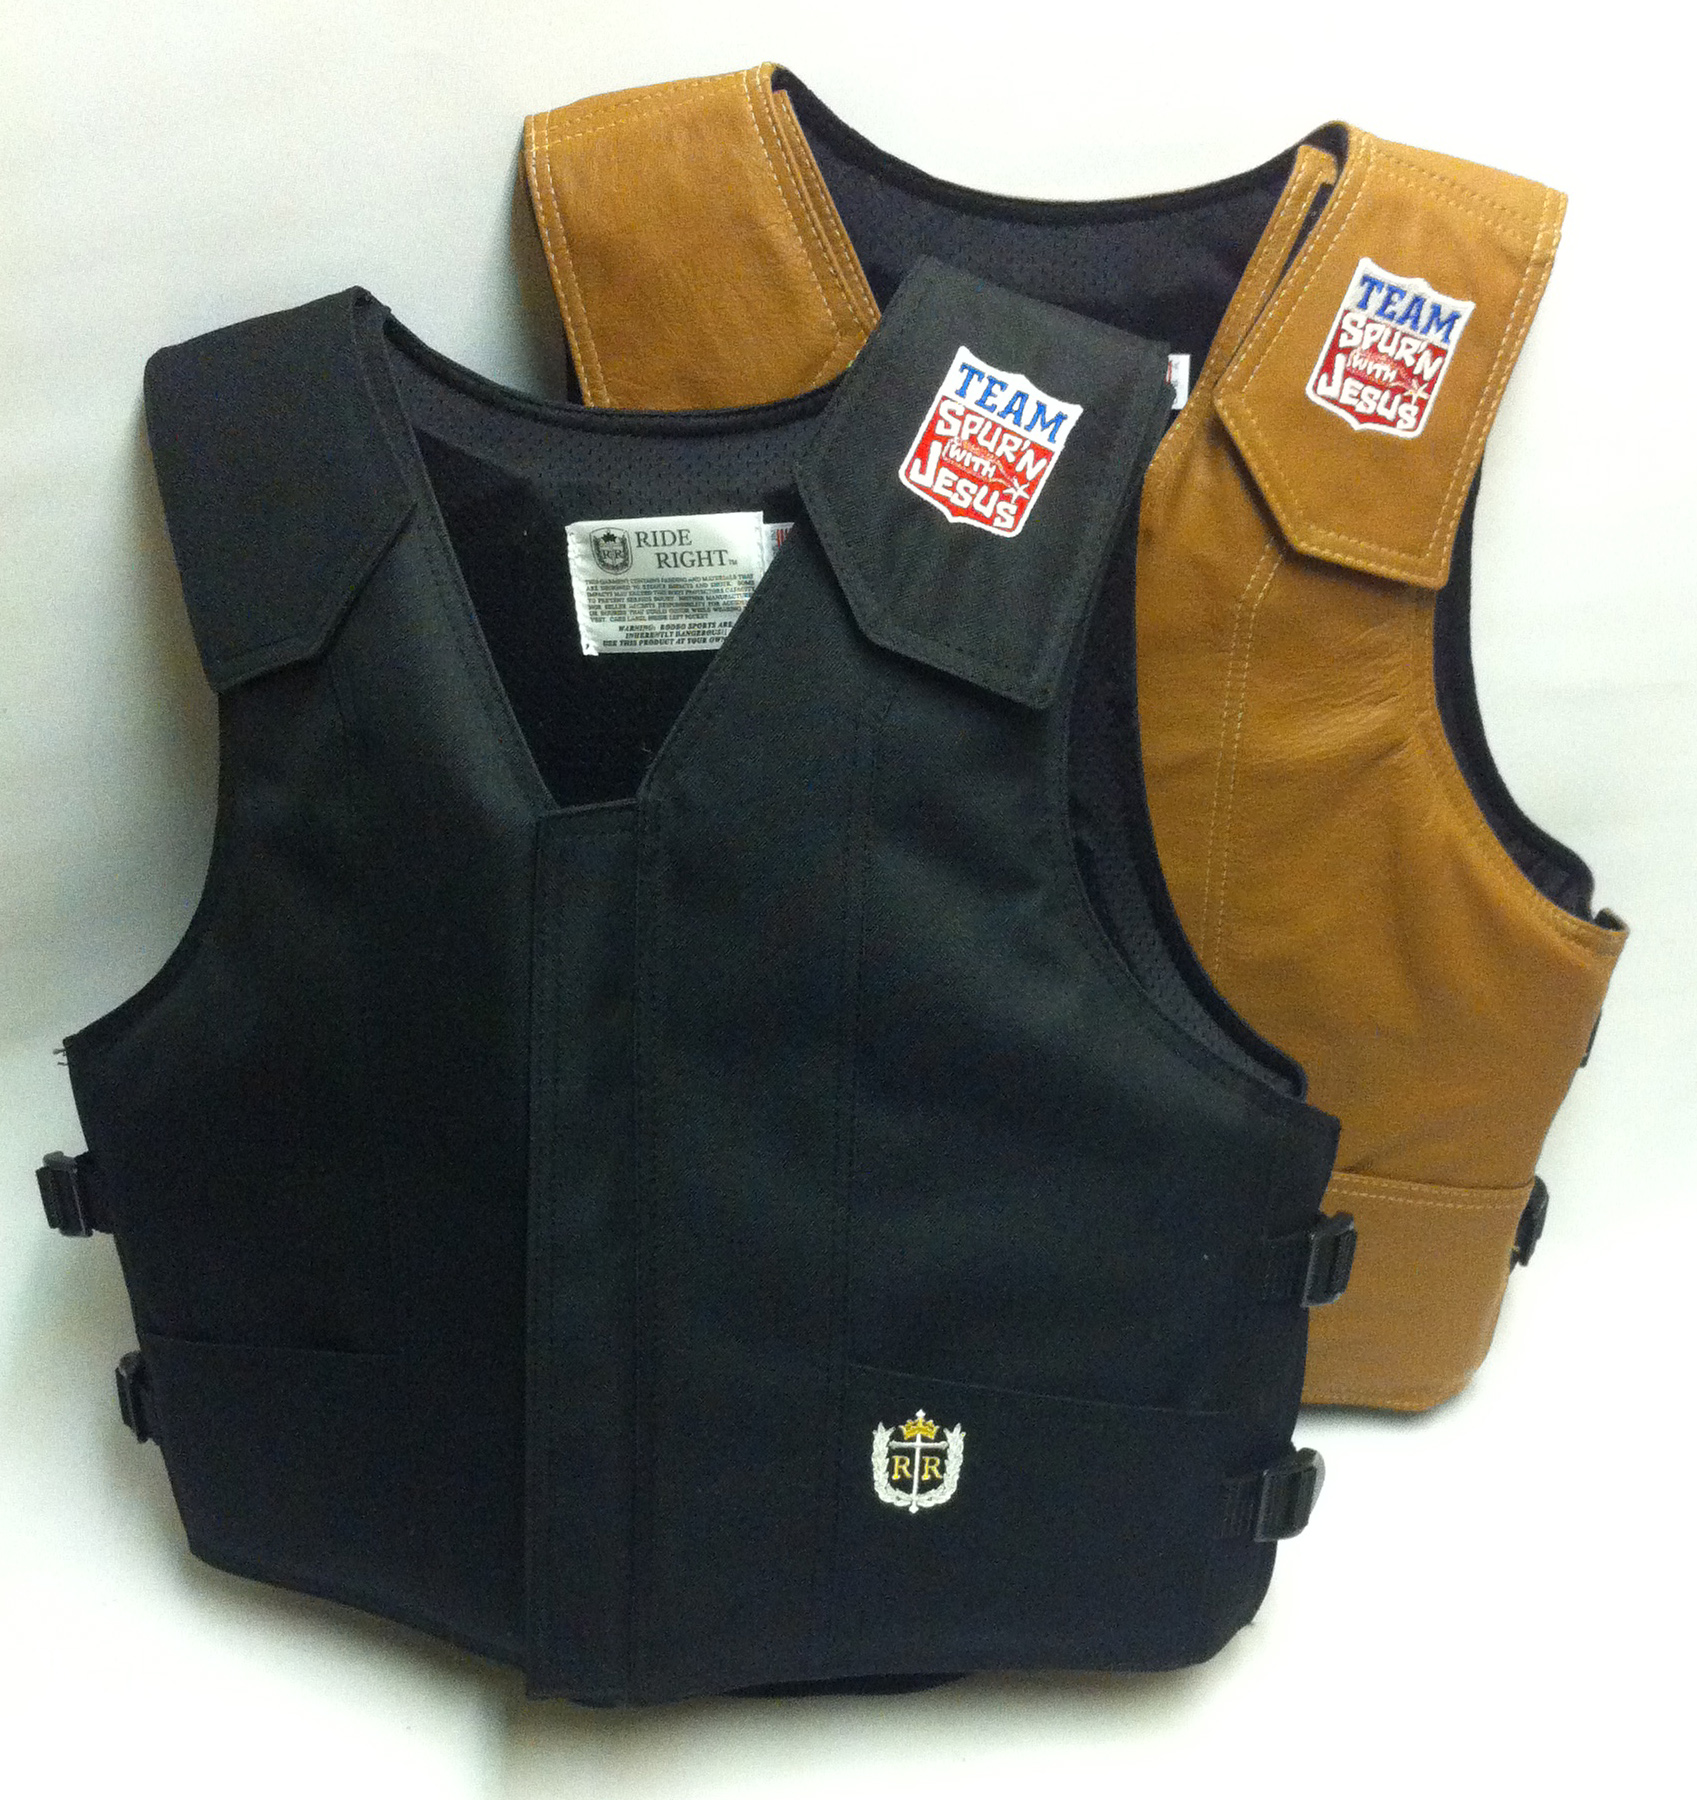 euipment Team Spurn with Jesus  poly and leather vest